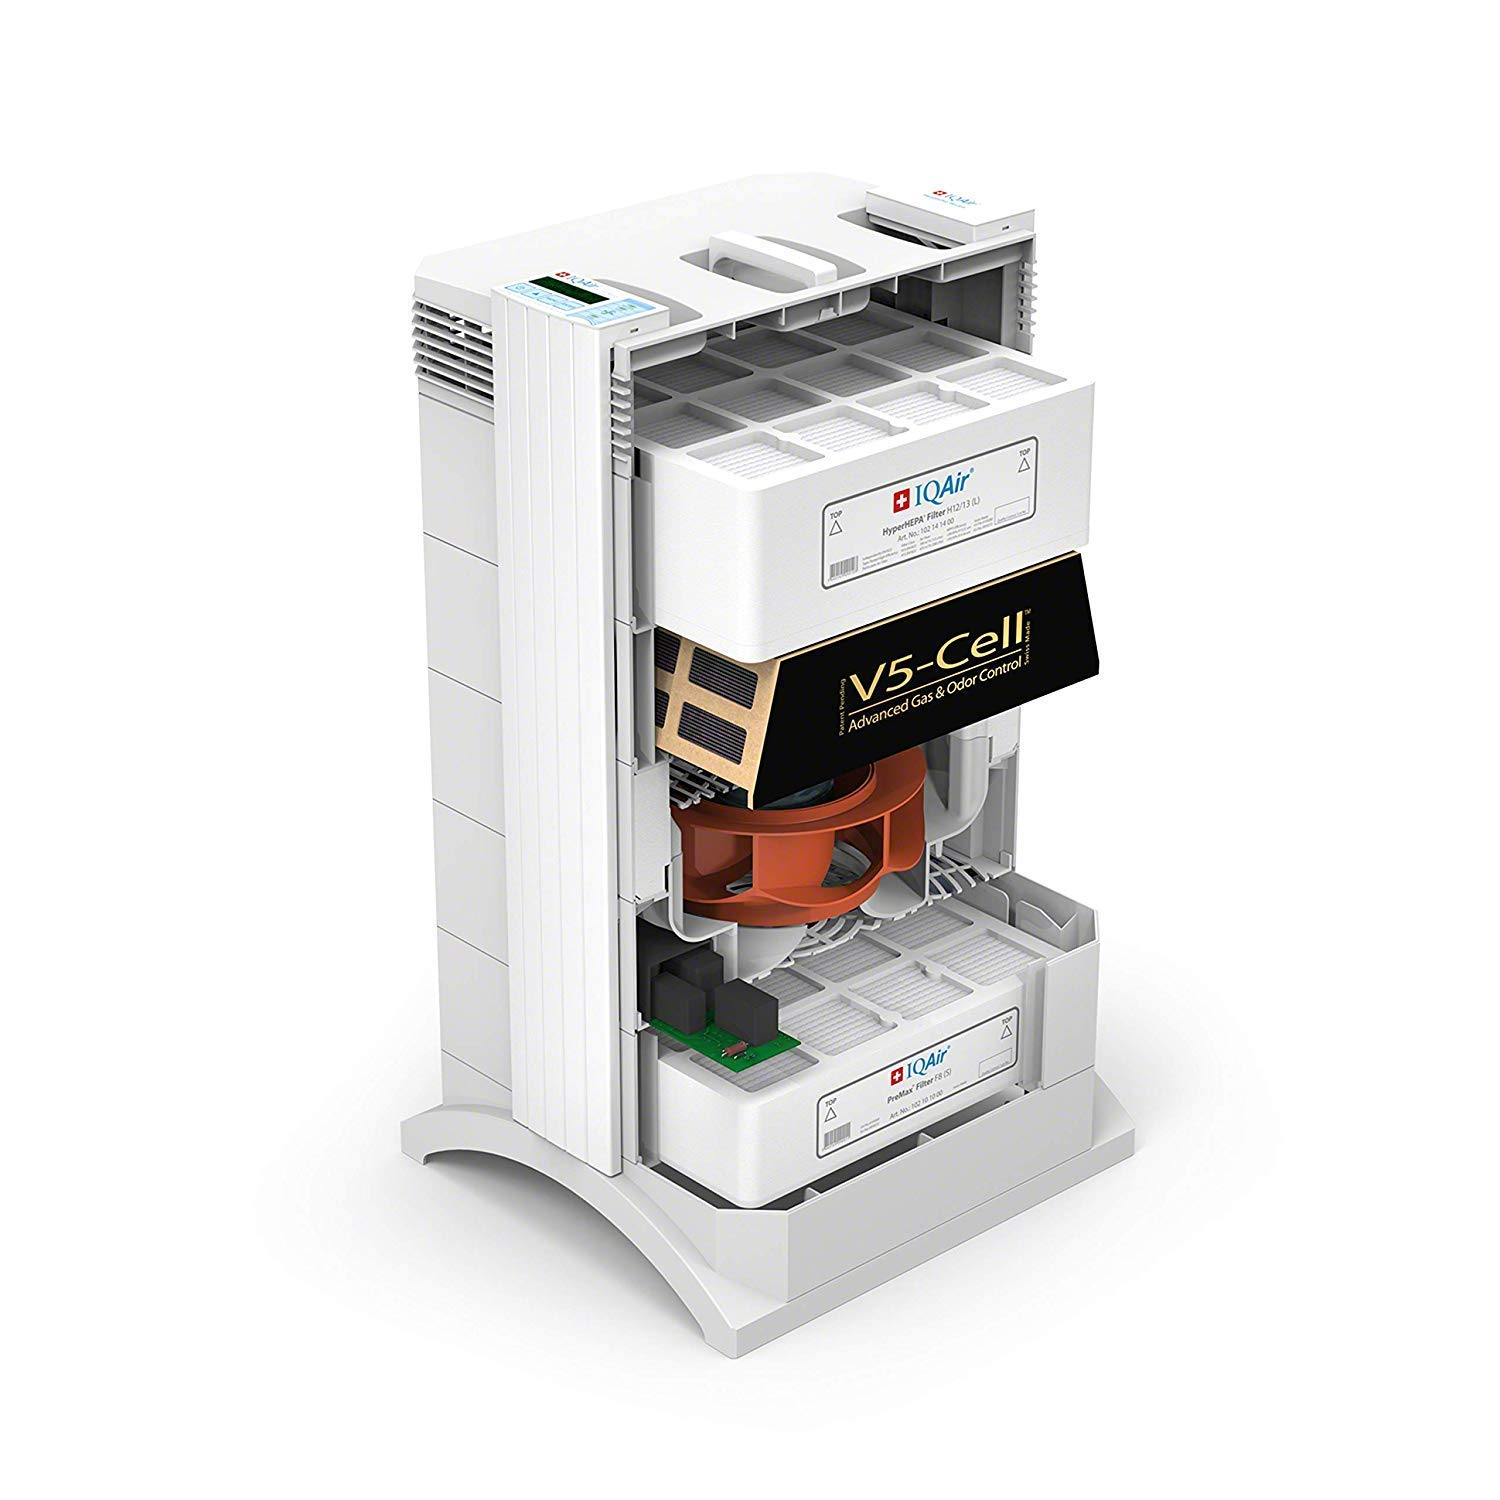 IQ-Air Best Air Purifier topratedhomeproducts info